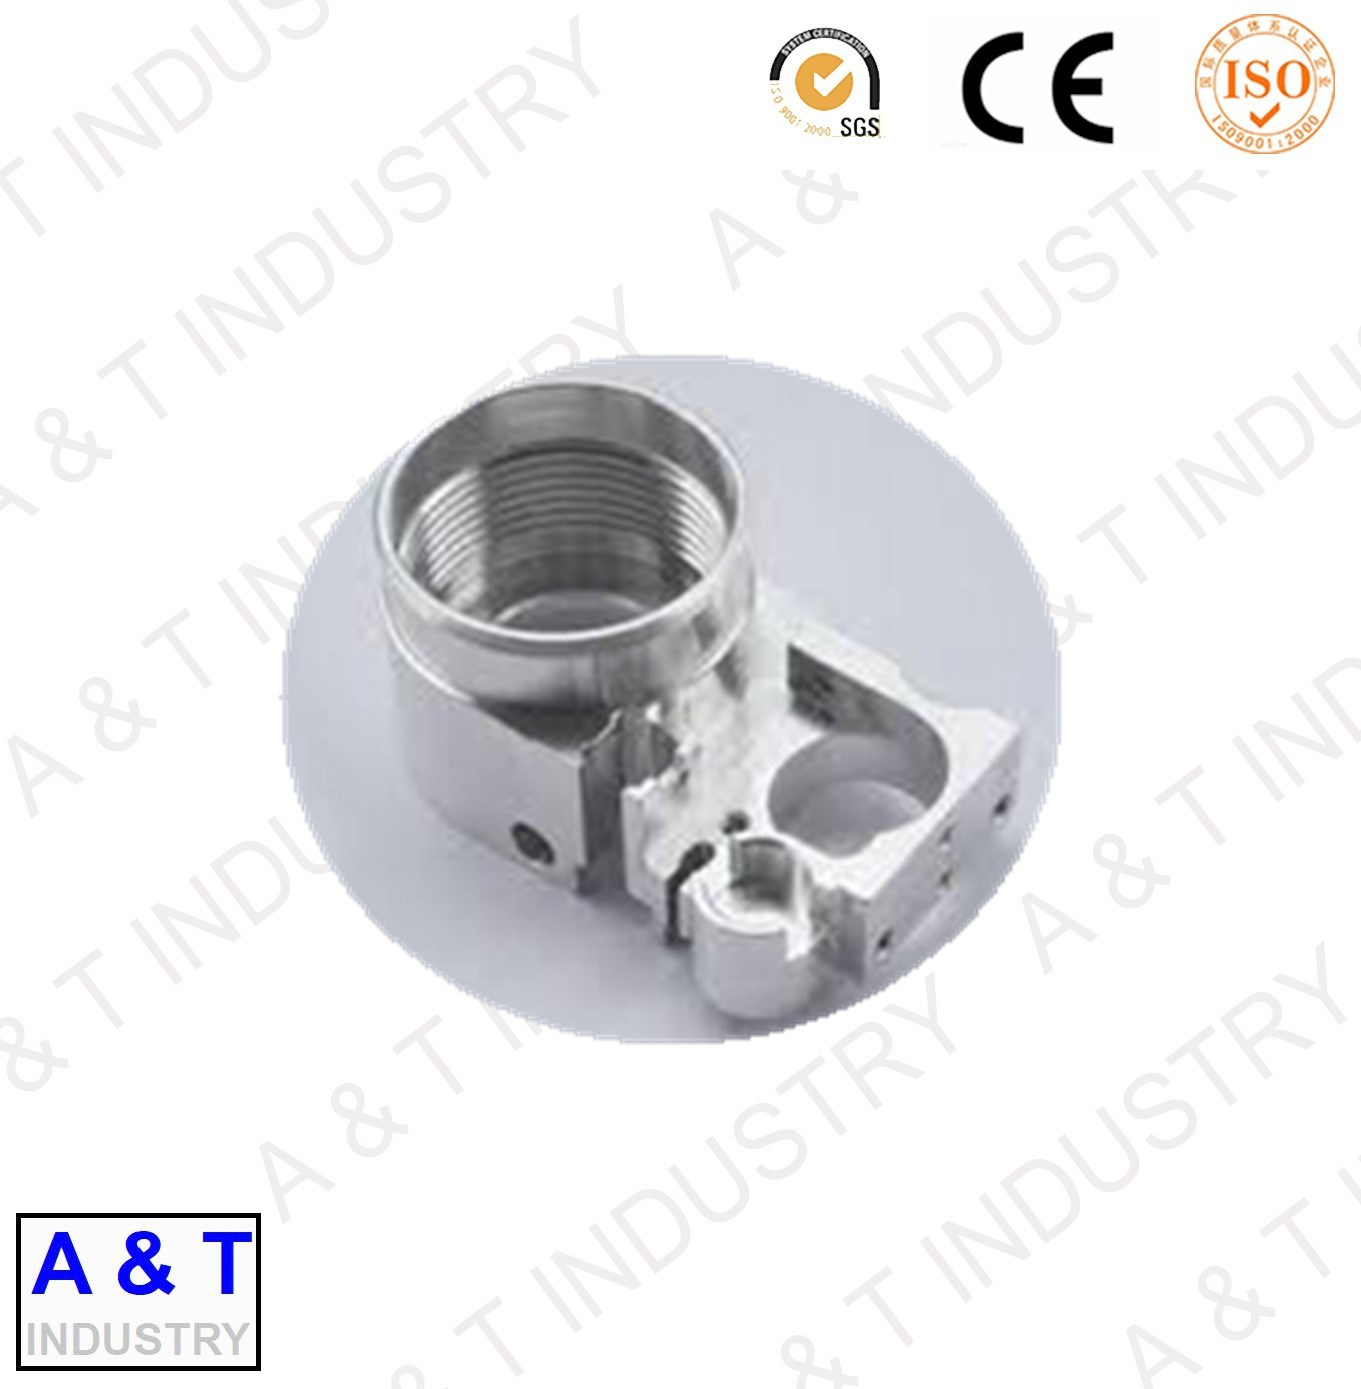 CNC Customized Stainless Steel Turning Parts with High Quality